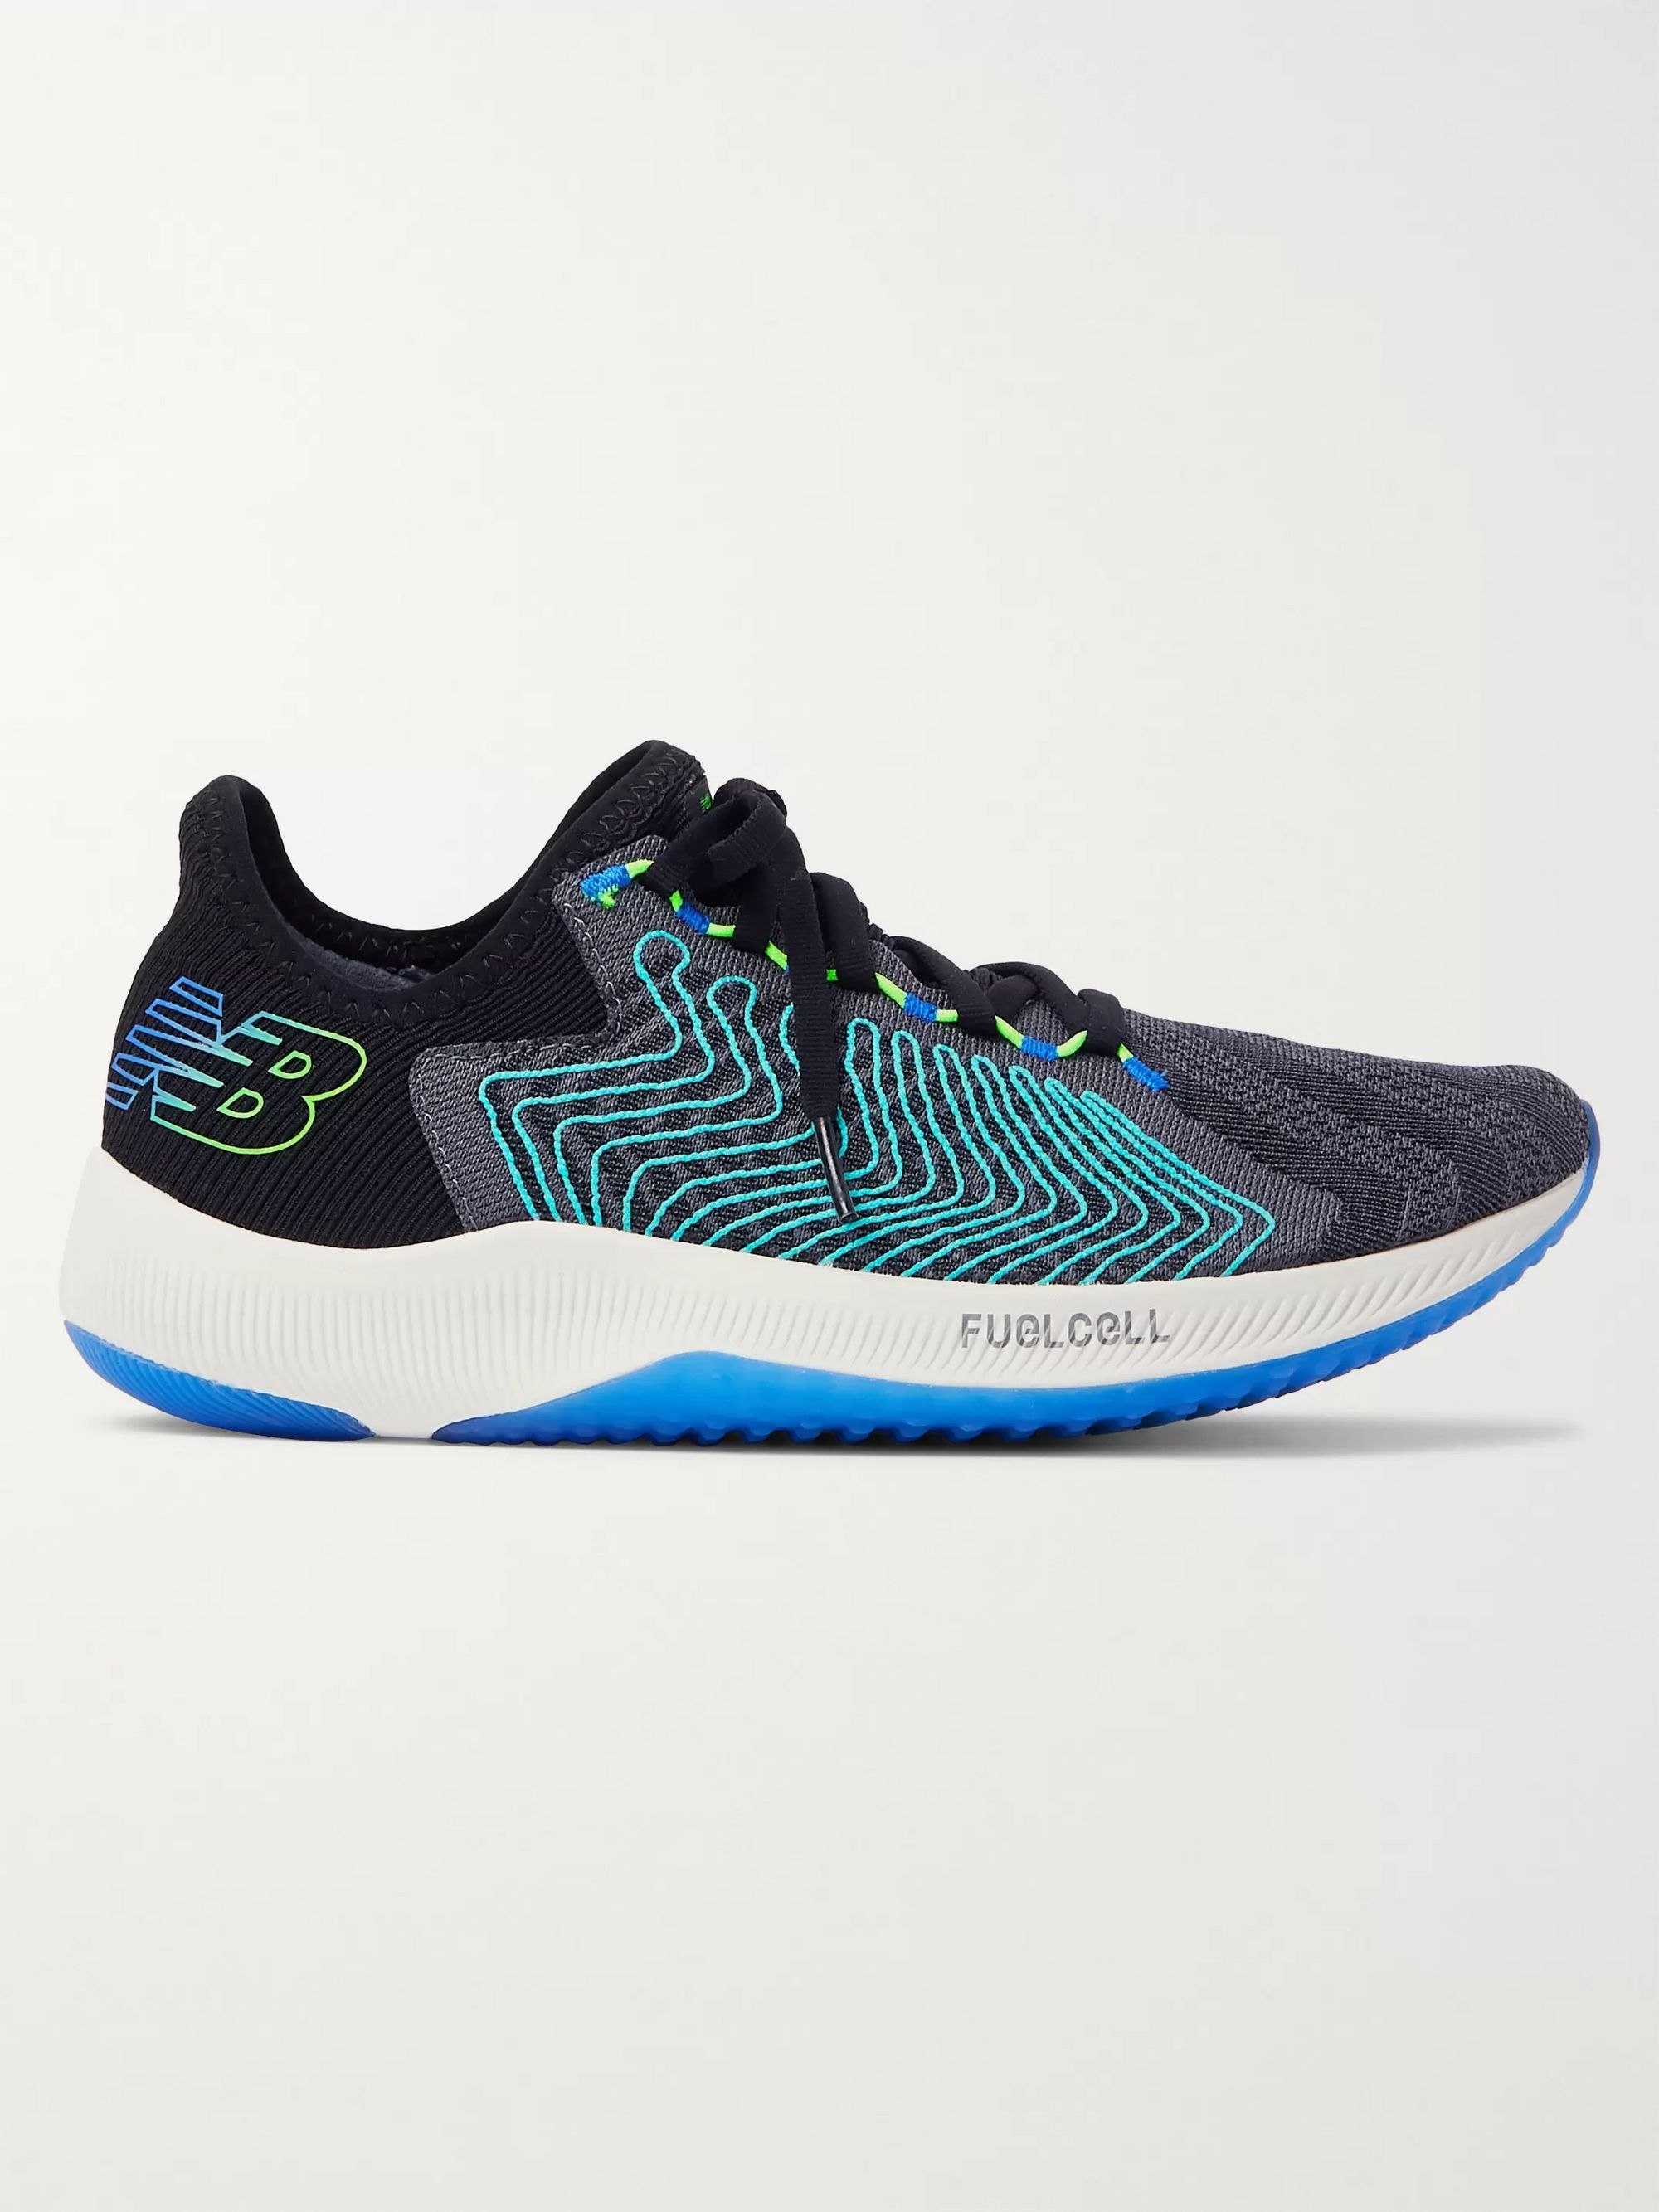 New Balance MFCXV1 Fuelcell Stretch-Knit Running Sneakers